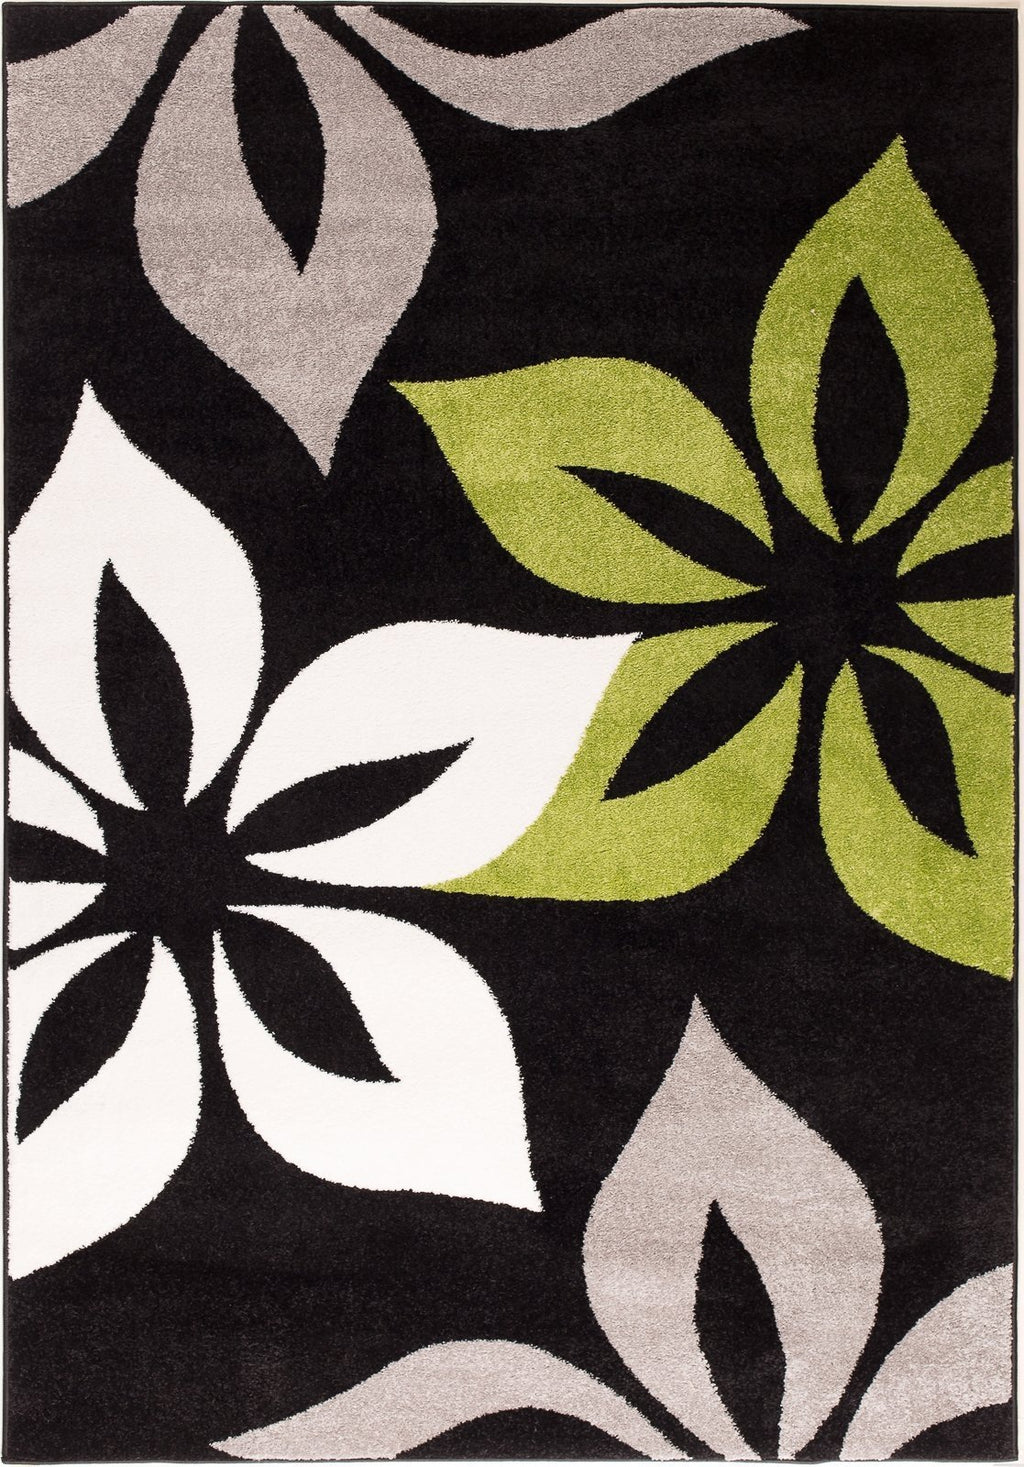 Ladole Green Flower Area Rug Modern Contemporary Living Dining Area Rug (4 x 6)